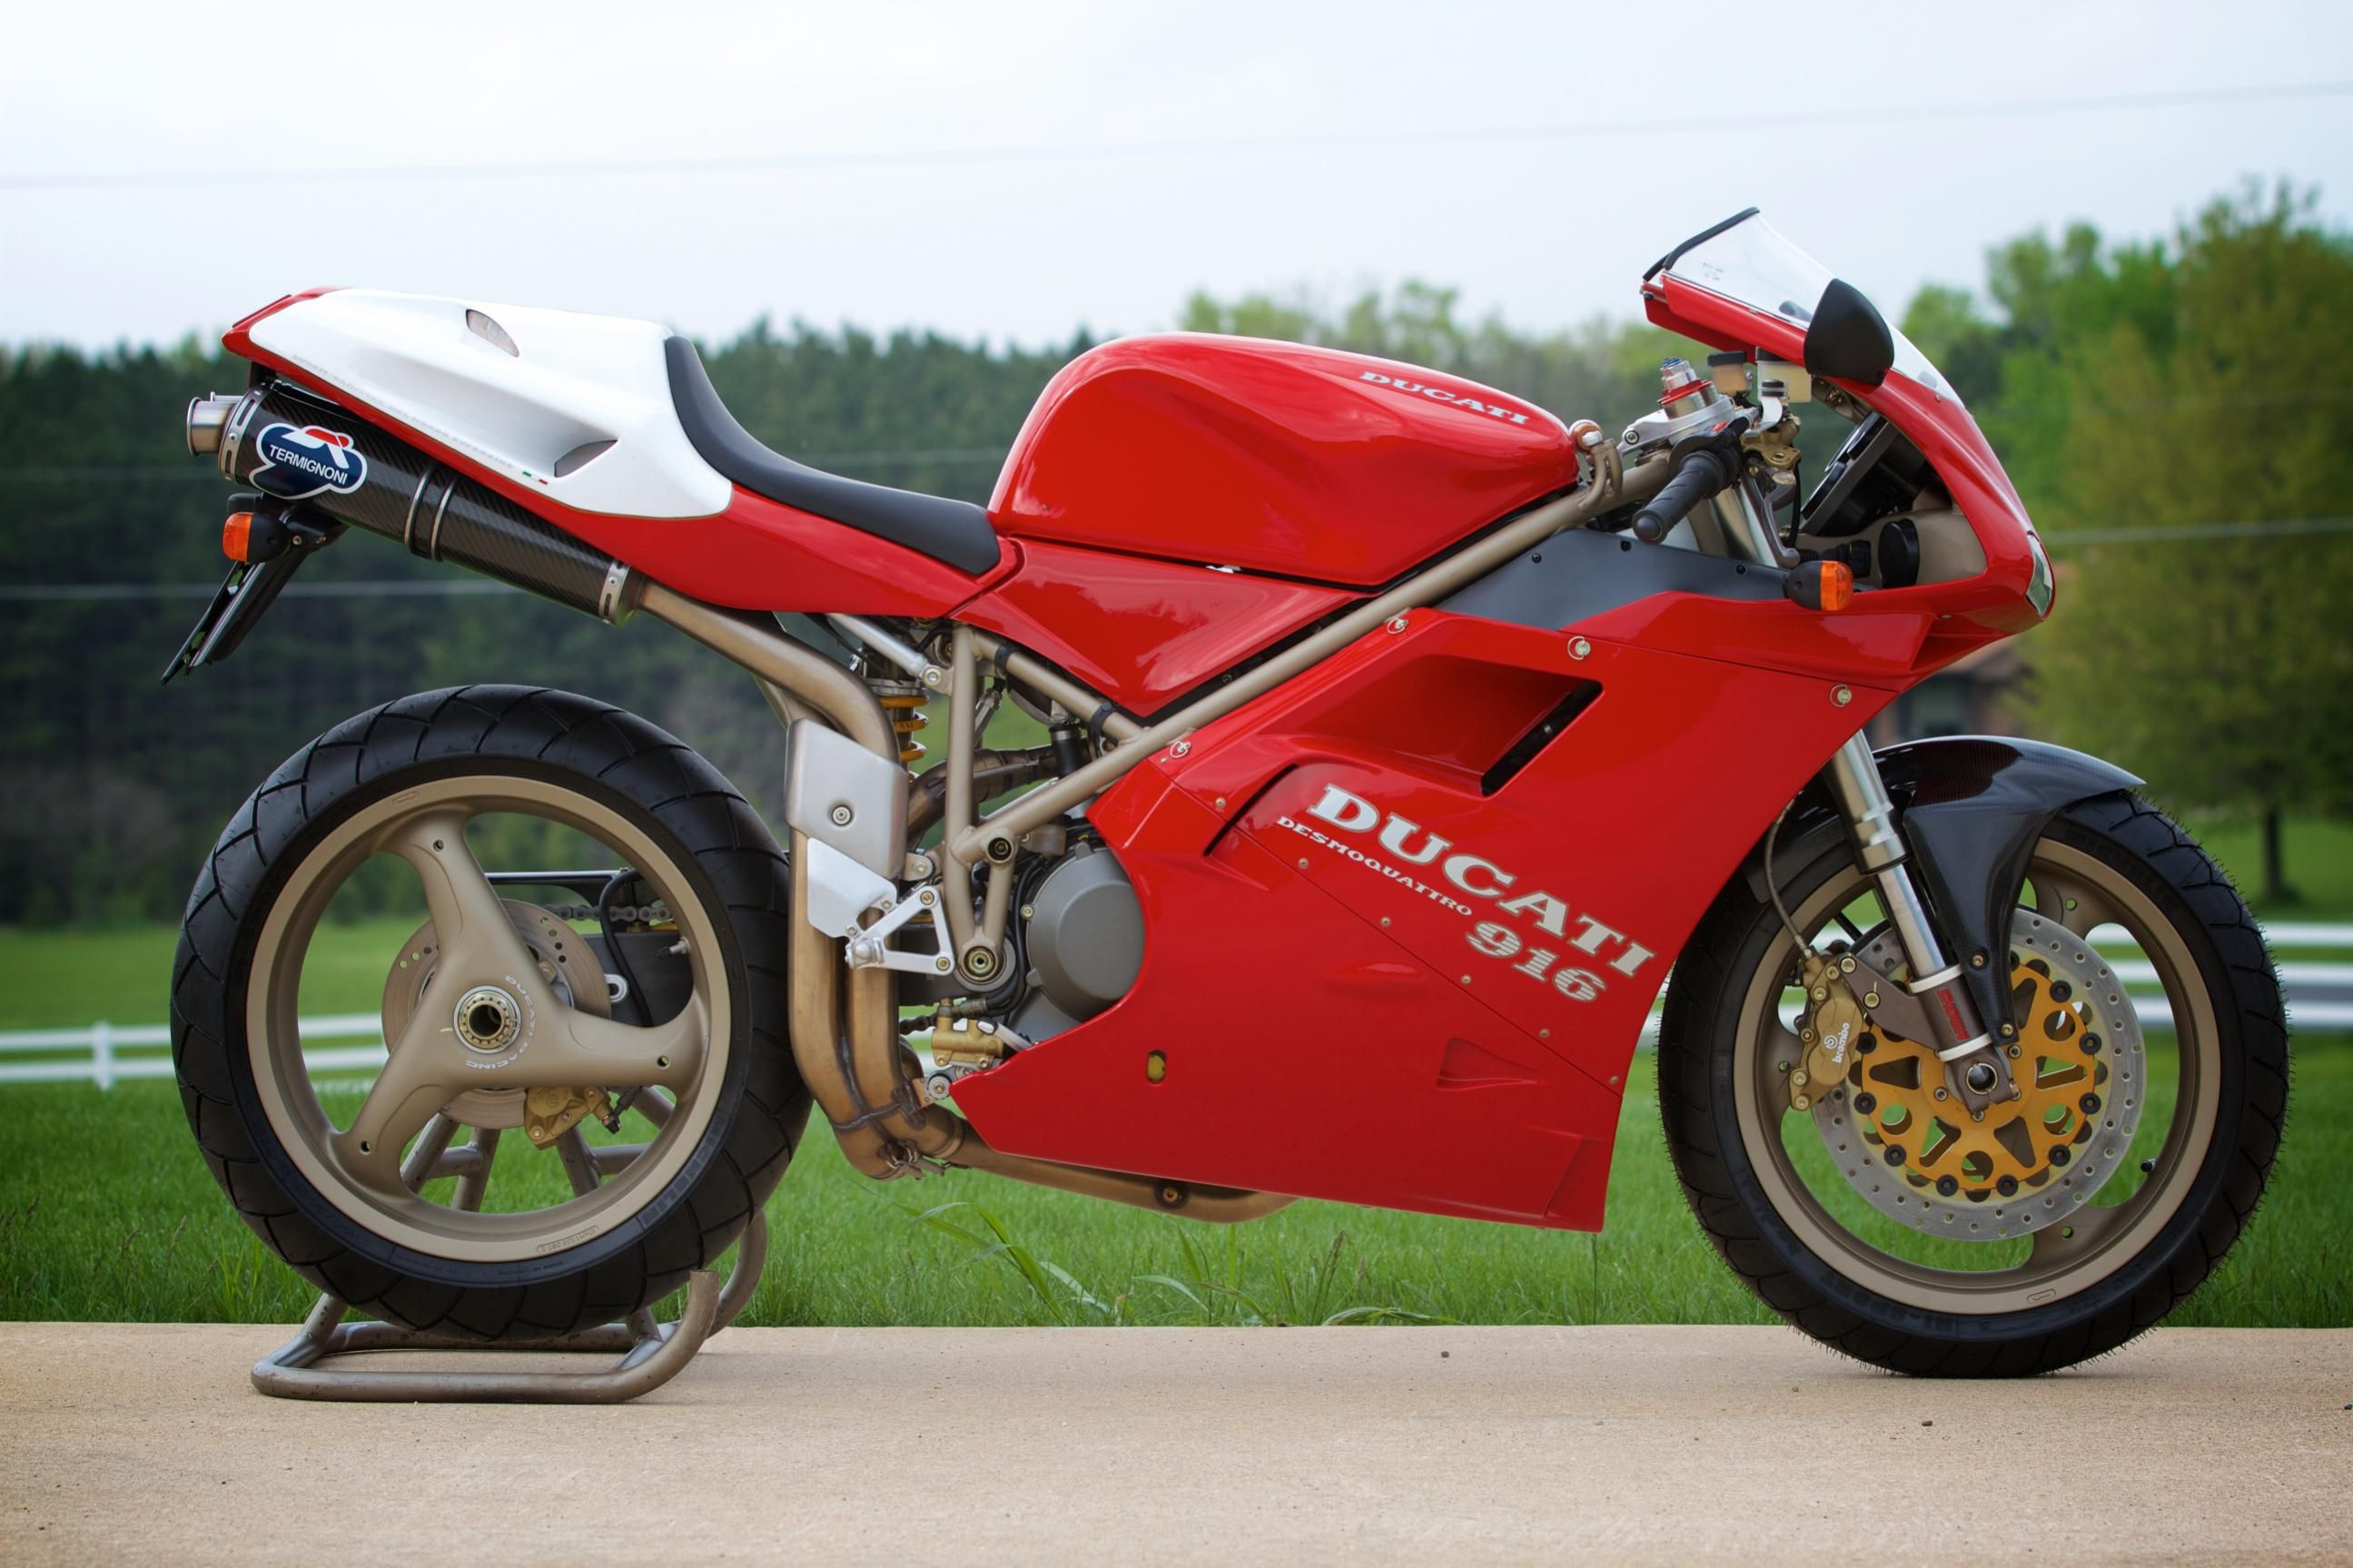 10 Coolest Ducati Motorcycles Ever Made, Ranked